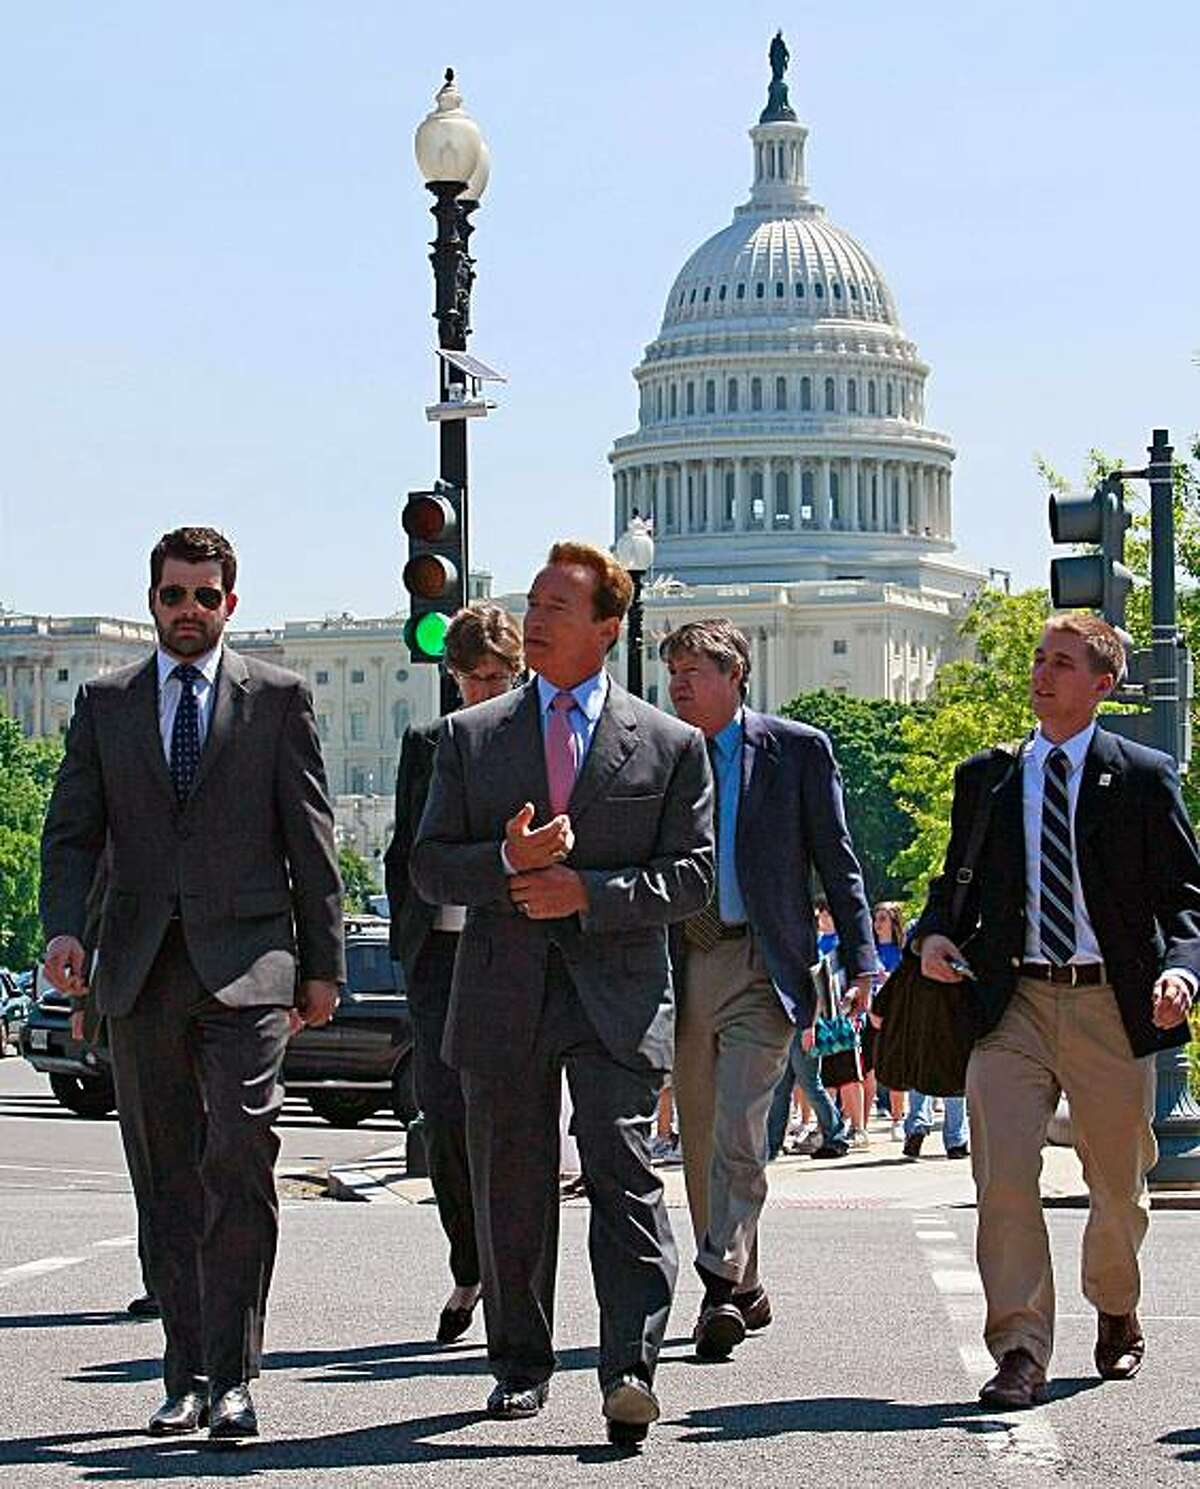 WASHINGTON - MAY 20: California Gov. Arnold Schwarzenegger (2R) walks with his entourage after meeting with Health and Human Services Secretary Kathleen Sebelius near the US Capitol on May 20, 2009 in Washington, DC. Governor Schwarzenegger talked about California's budget cuts and said he will ask President Obama for flexibility in the cuts that California needs to make. (Photo by Mark Wilson/Getty Images)